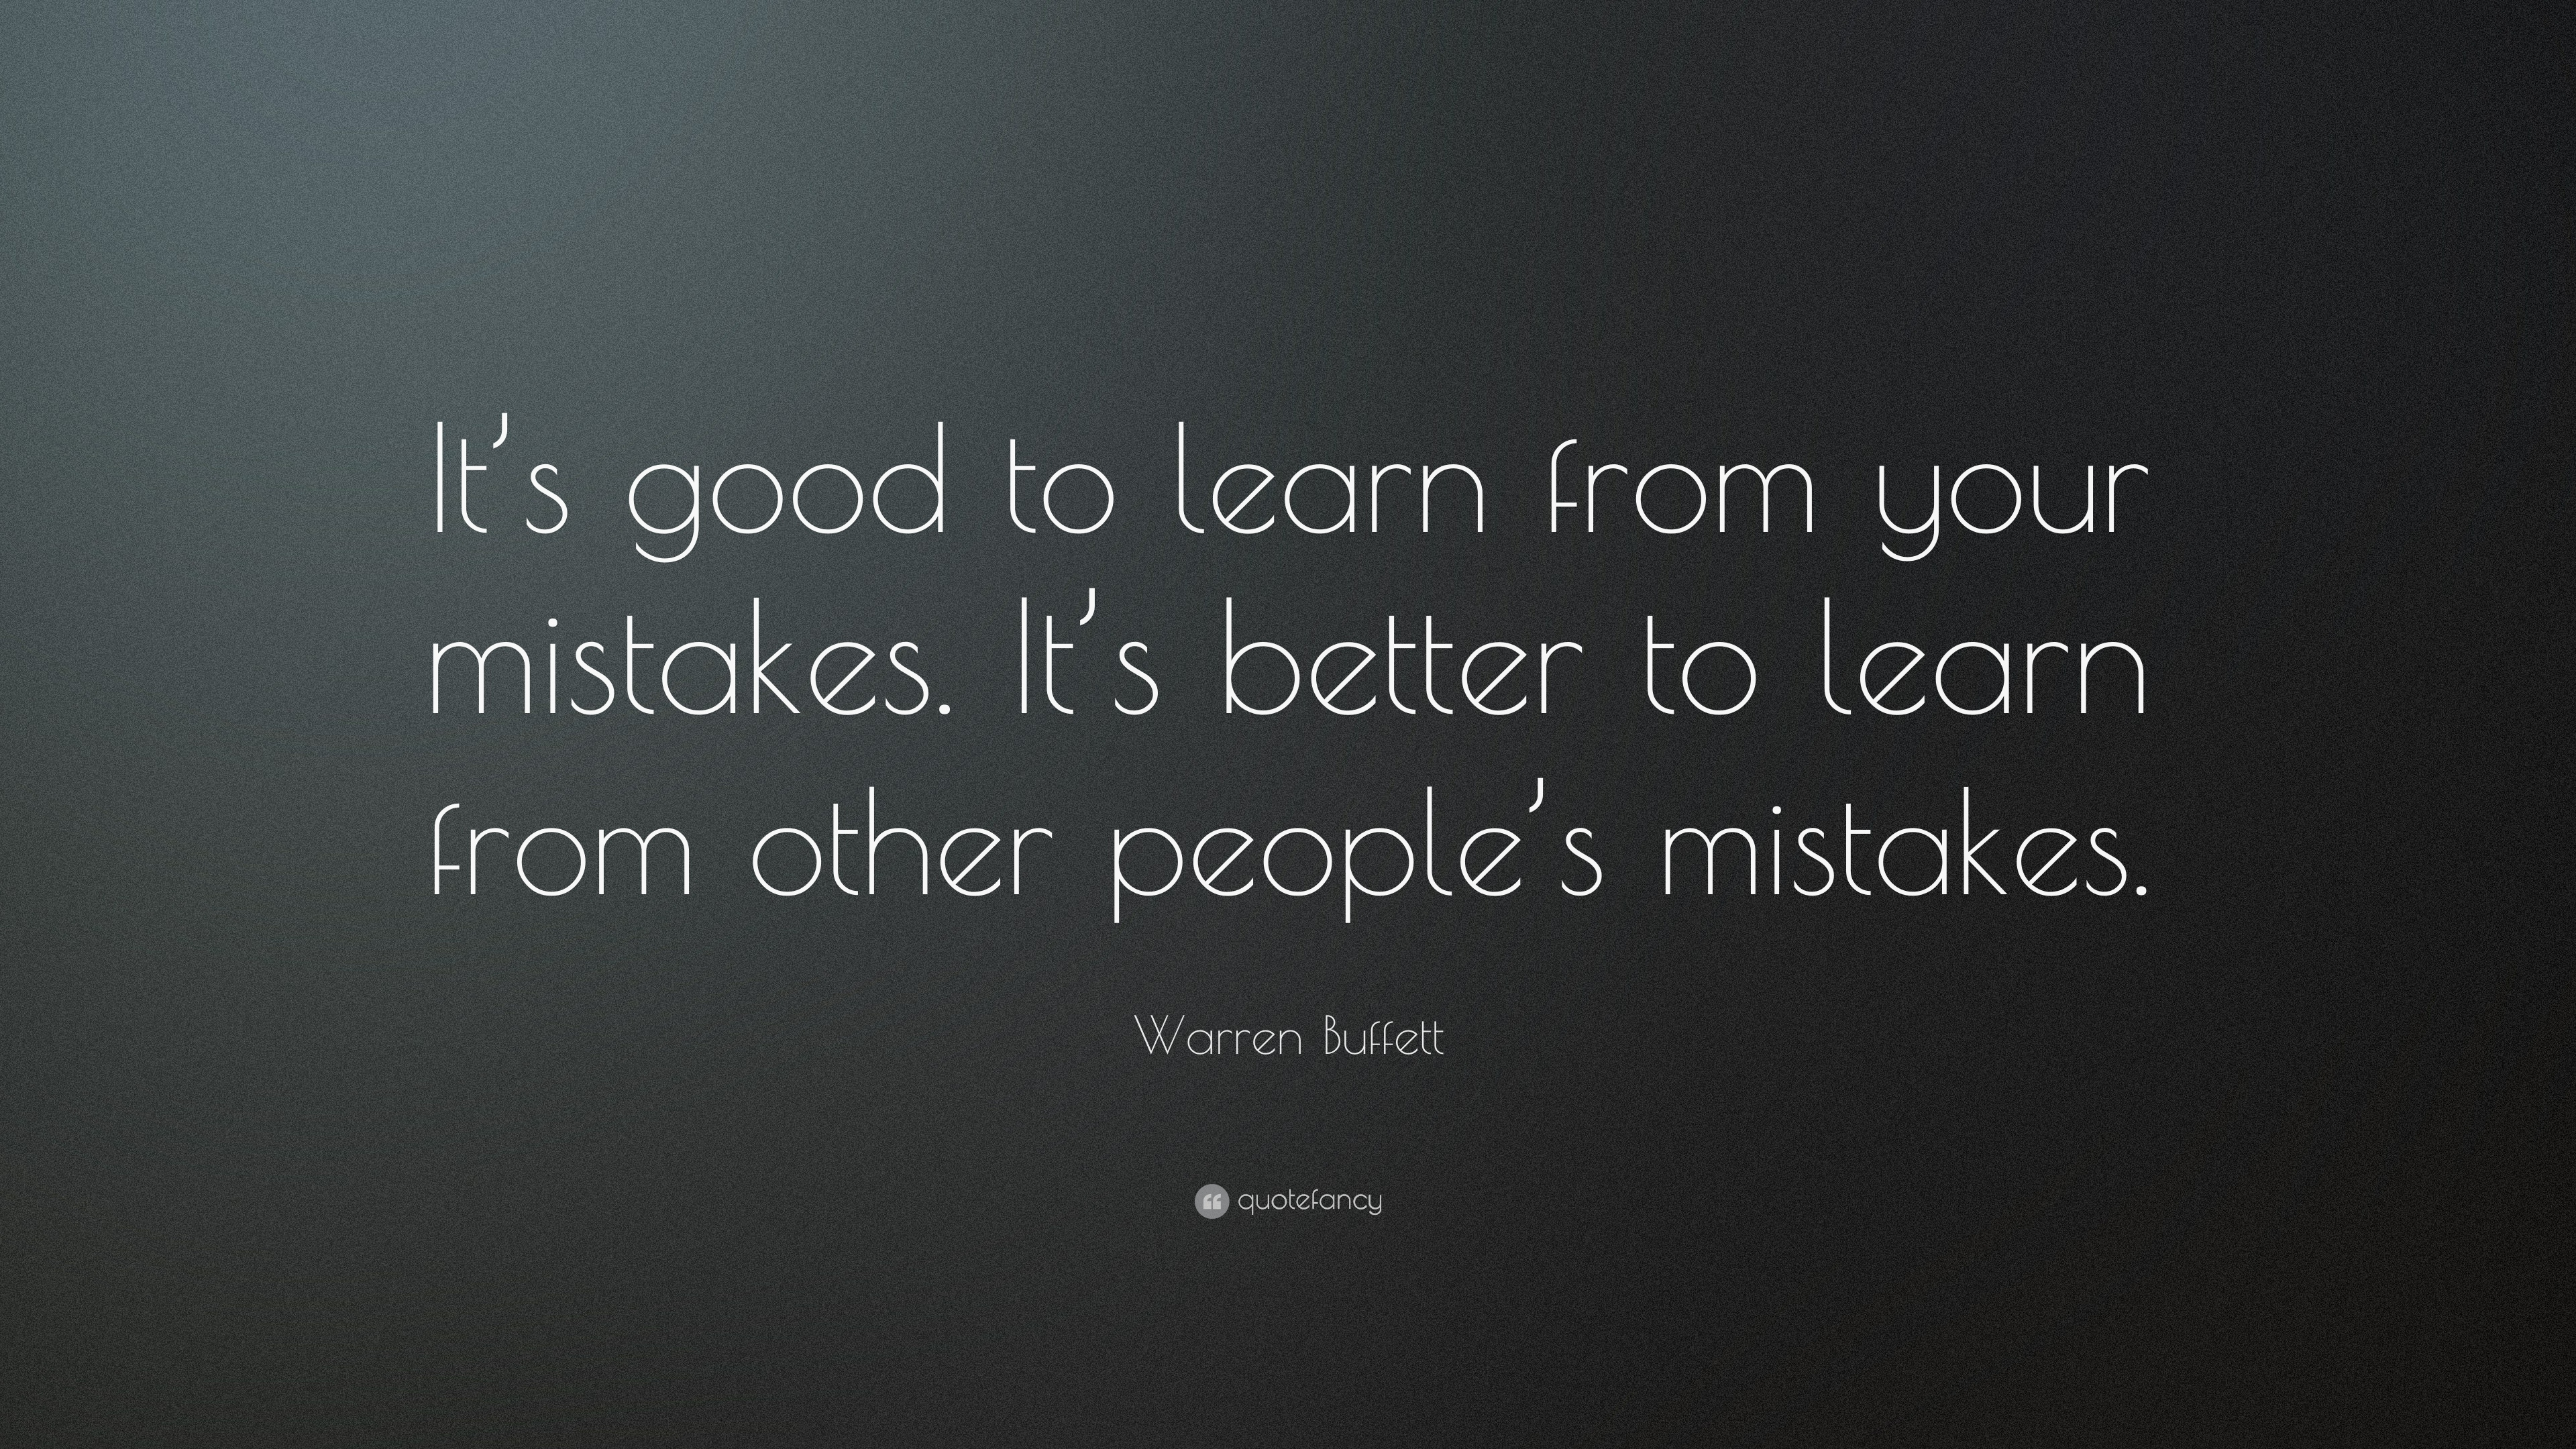 25 Encouraging Bible Verses About Learning From Mistakes